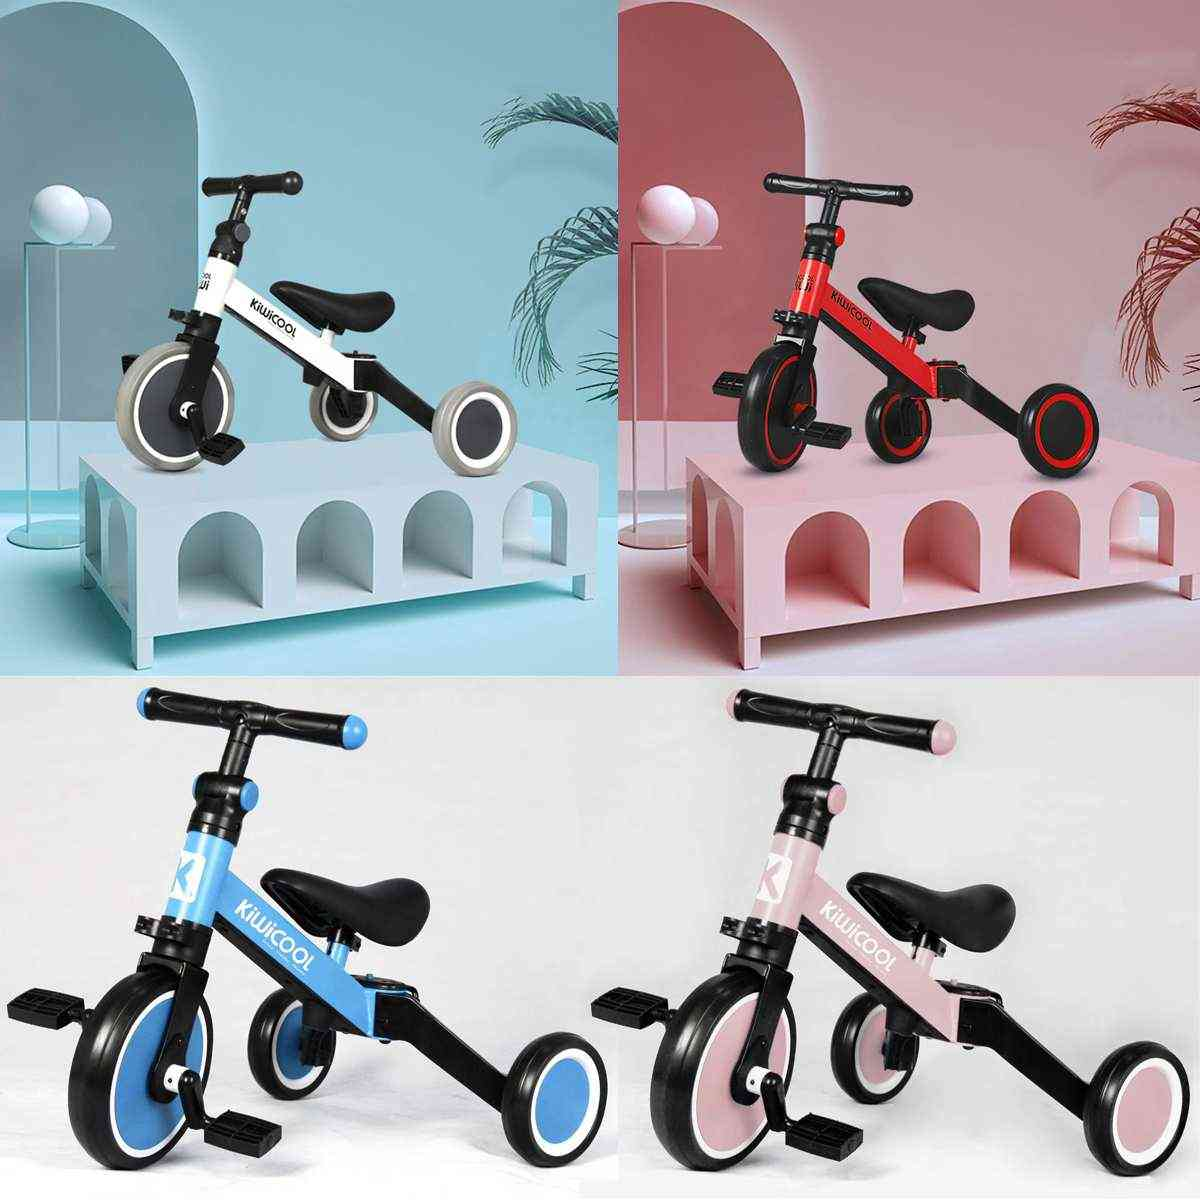 Deformable Scooter Tricycle, 3 In 1 Design, Balance Bicycle Ride On Bike For Baby